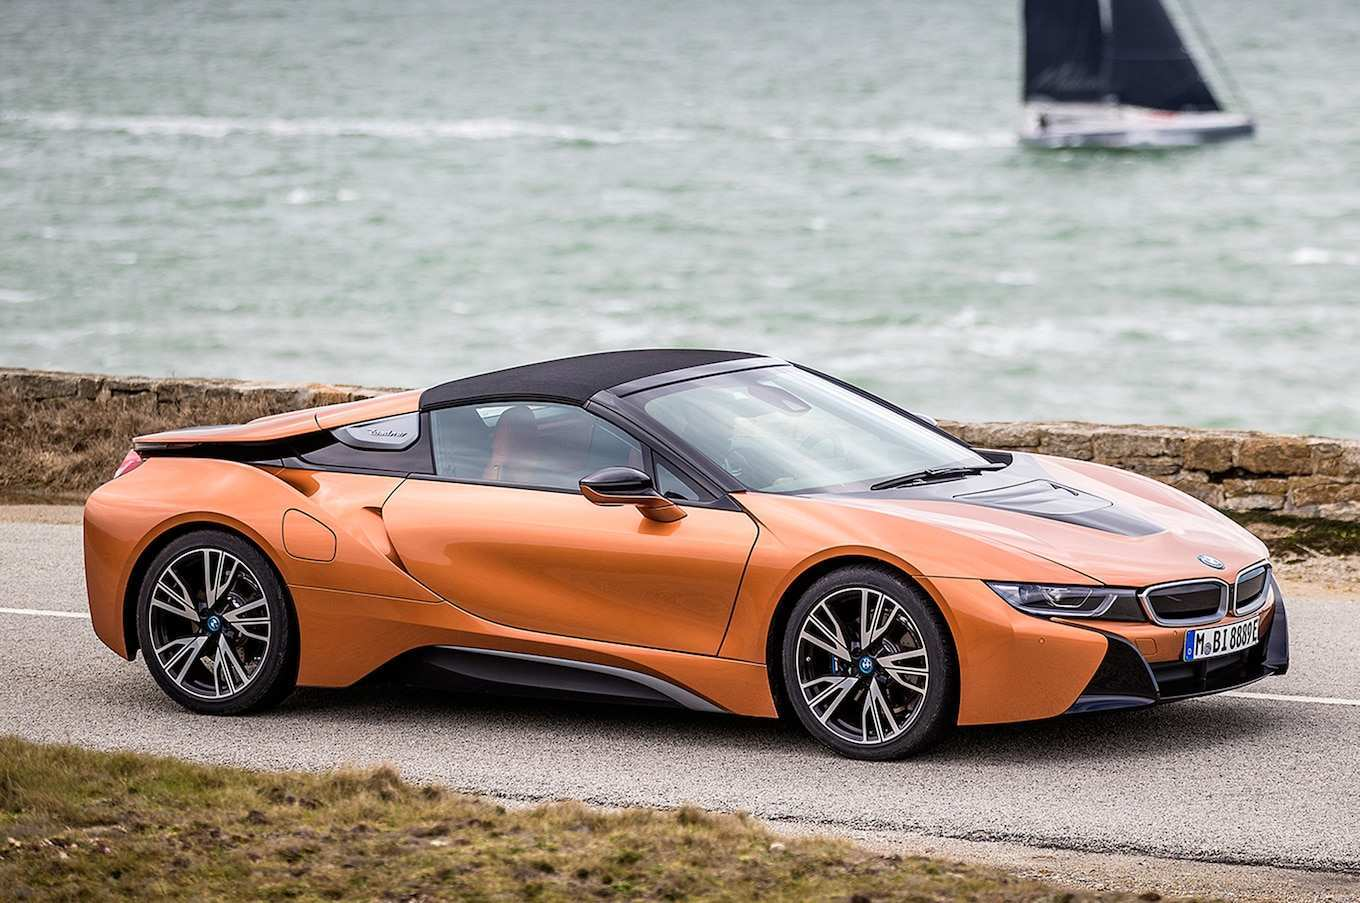 13 Concept of New Bmw I8 Roadster 2019 Interior Performance and New Engine by New Bmw I8 Roadster 2019 Interior